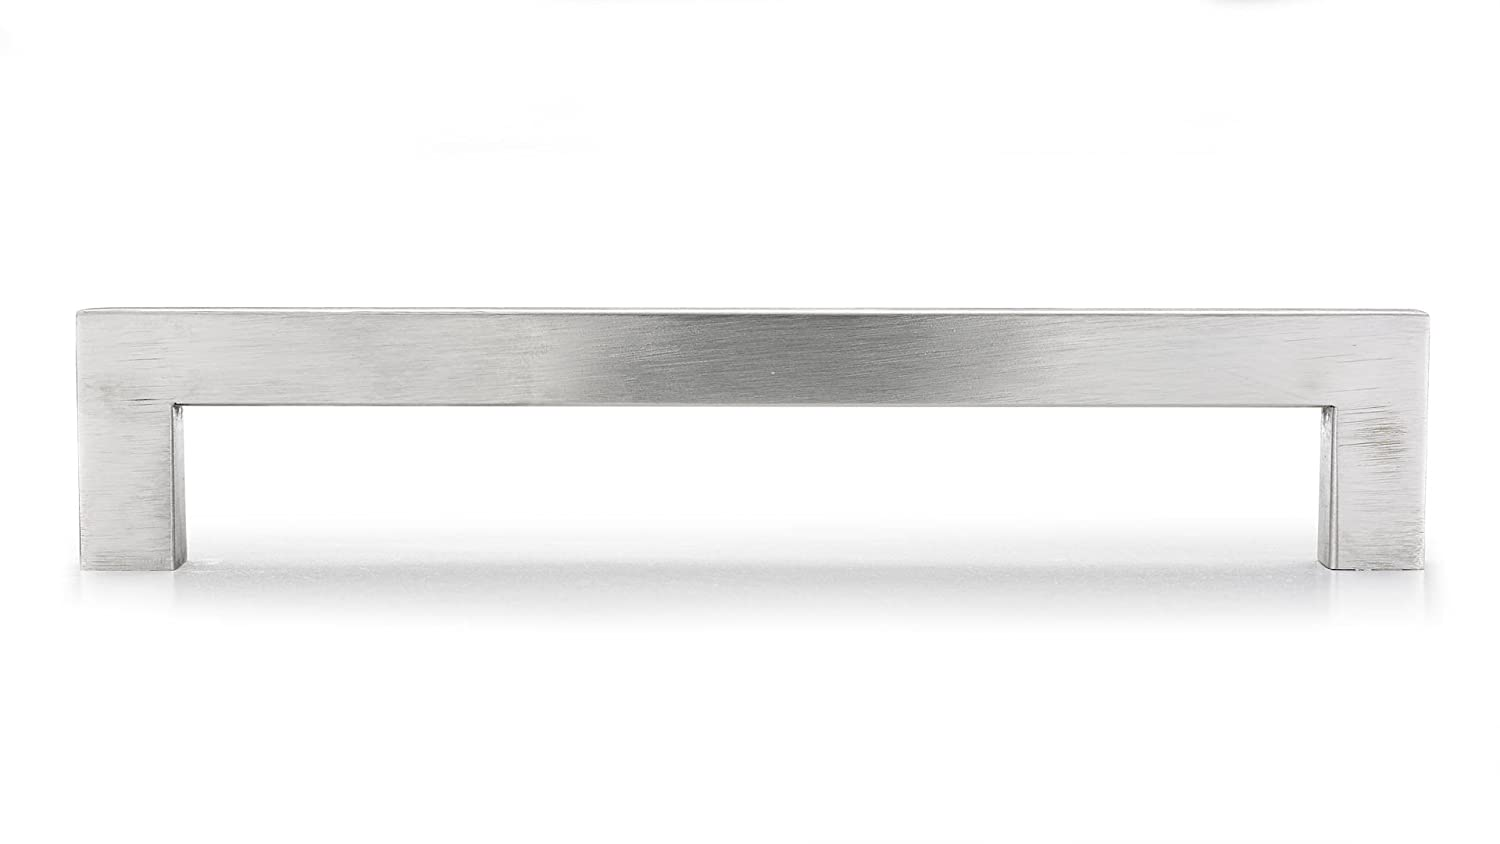 7 5//9 Stainless Steel Richelieu Hardware BP604192170 Contemporary Metal Pull